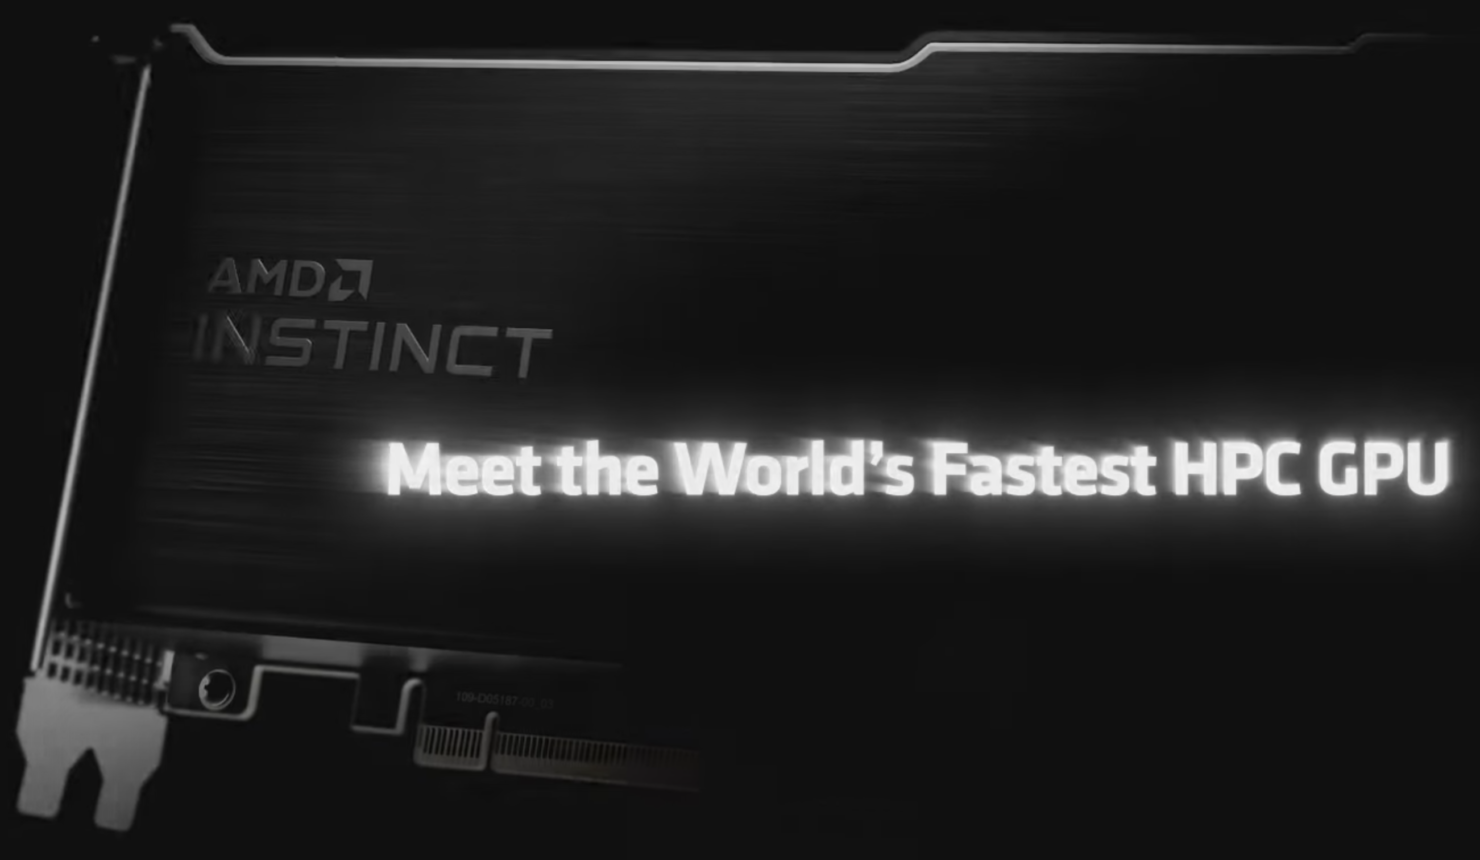 amd-instinct-mi200-cdna-2-gpu-powered-accelerator-reportedly-launching-in-2021,-could-feature-mcm-architecture